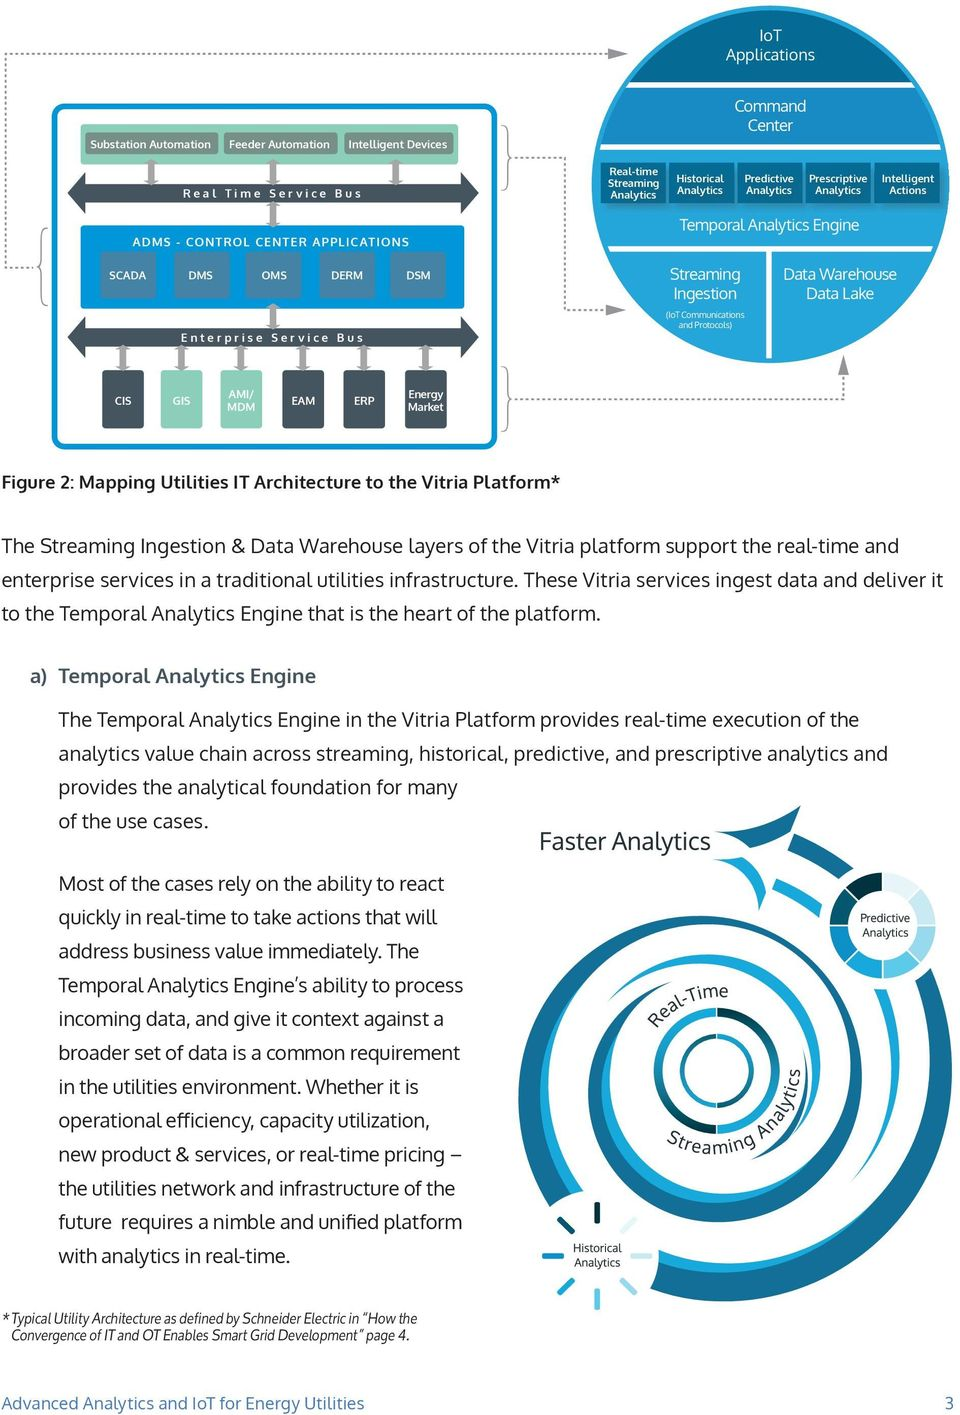 2: Mapping Utilities IT Architecture to the Vitria Platform* The Ingestion & Data Warehouse layers of the Vitria platform support the real-time and enterprise services in a traditional utilities